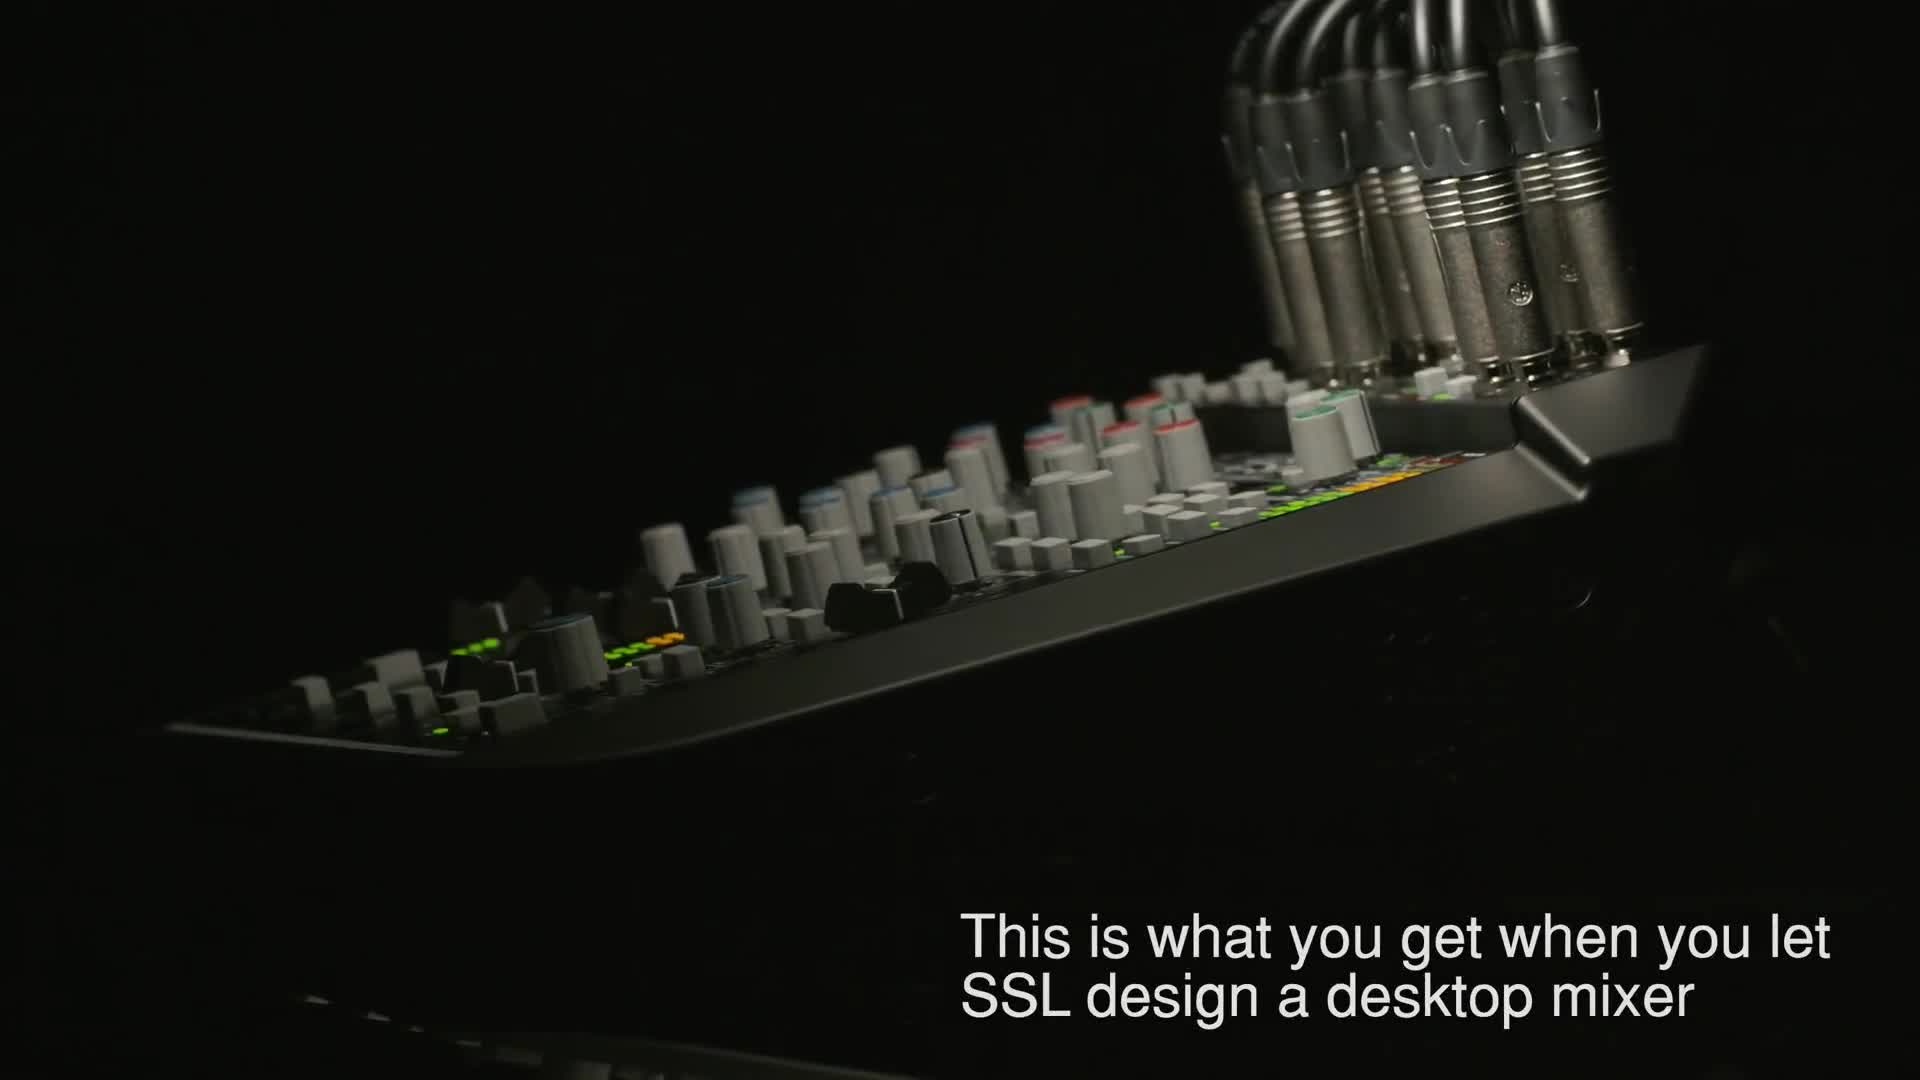 SSL SiX - The Ultimate Desktop Mixer